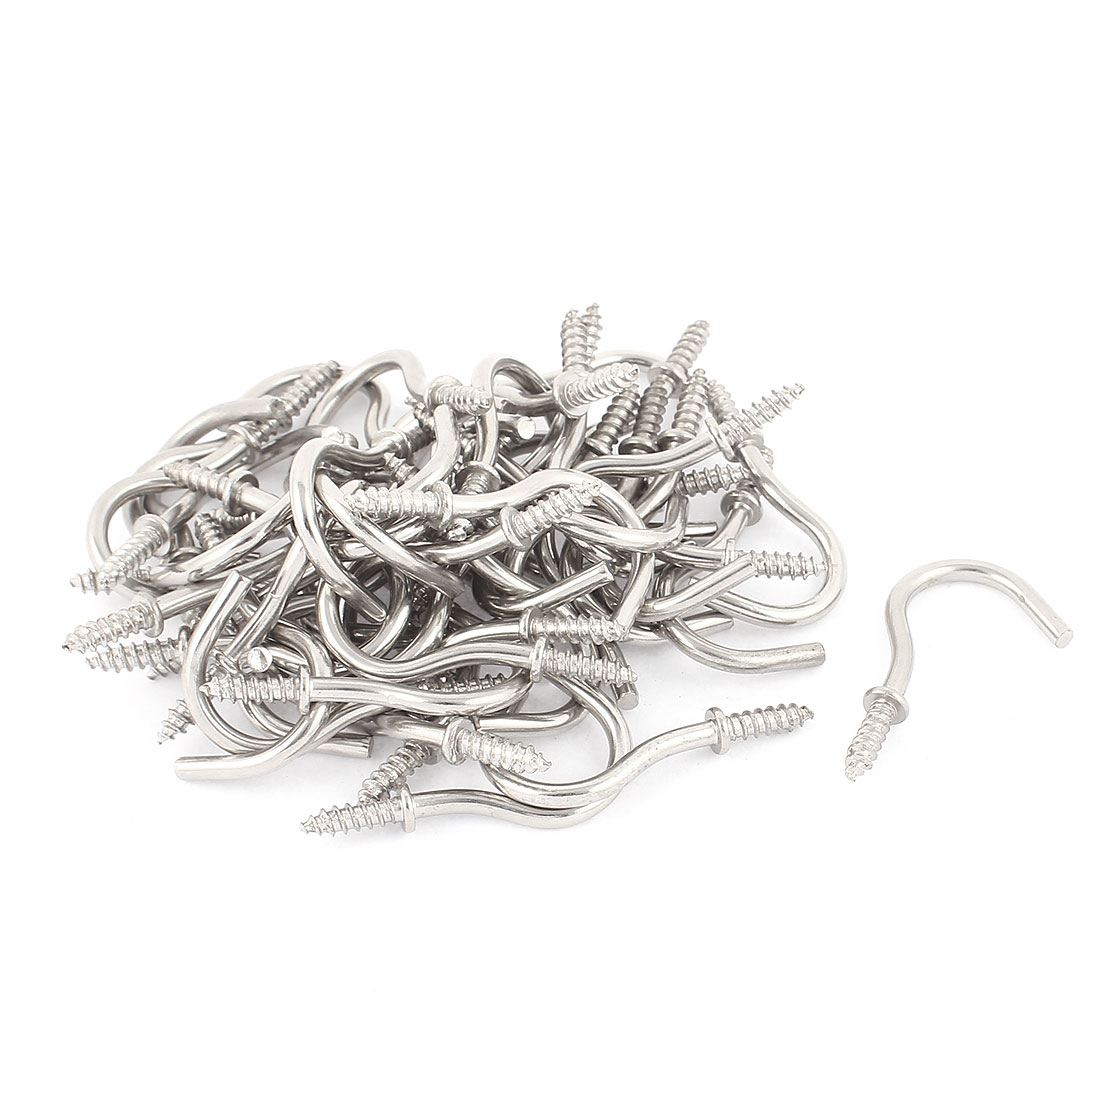 50 Pcs 4mm Stainless Steel Shouldered Cup Hook Screw In Hat Coat Peg Bolts